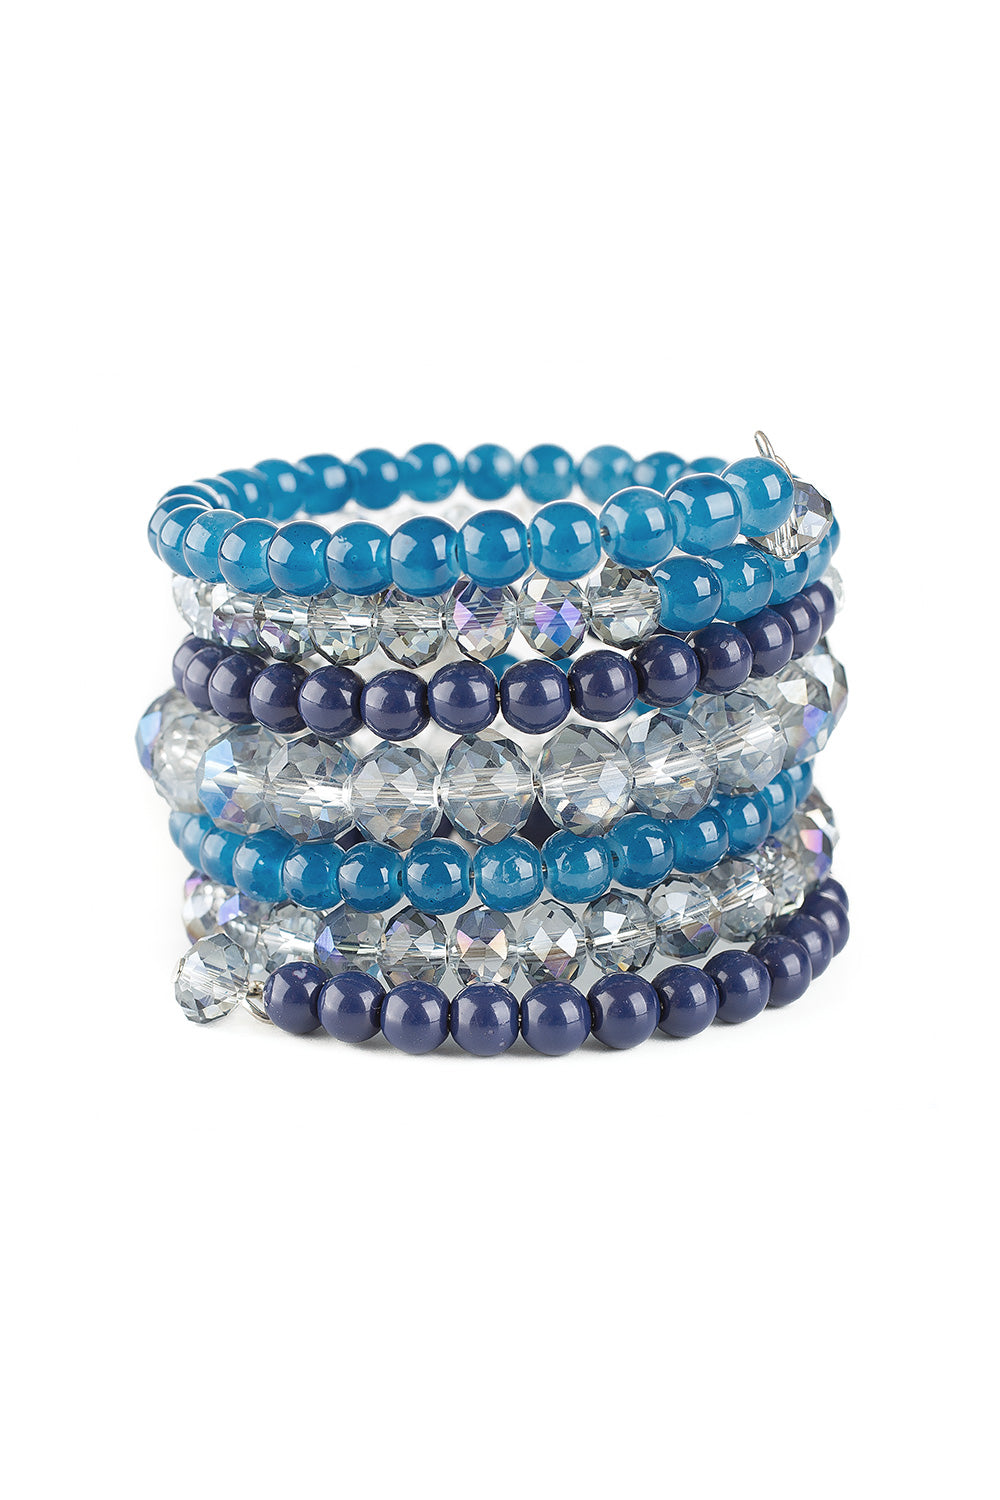 Type 2 Blended Blues Bracelet